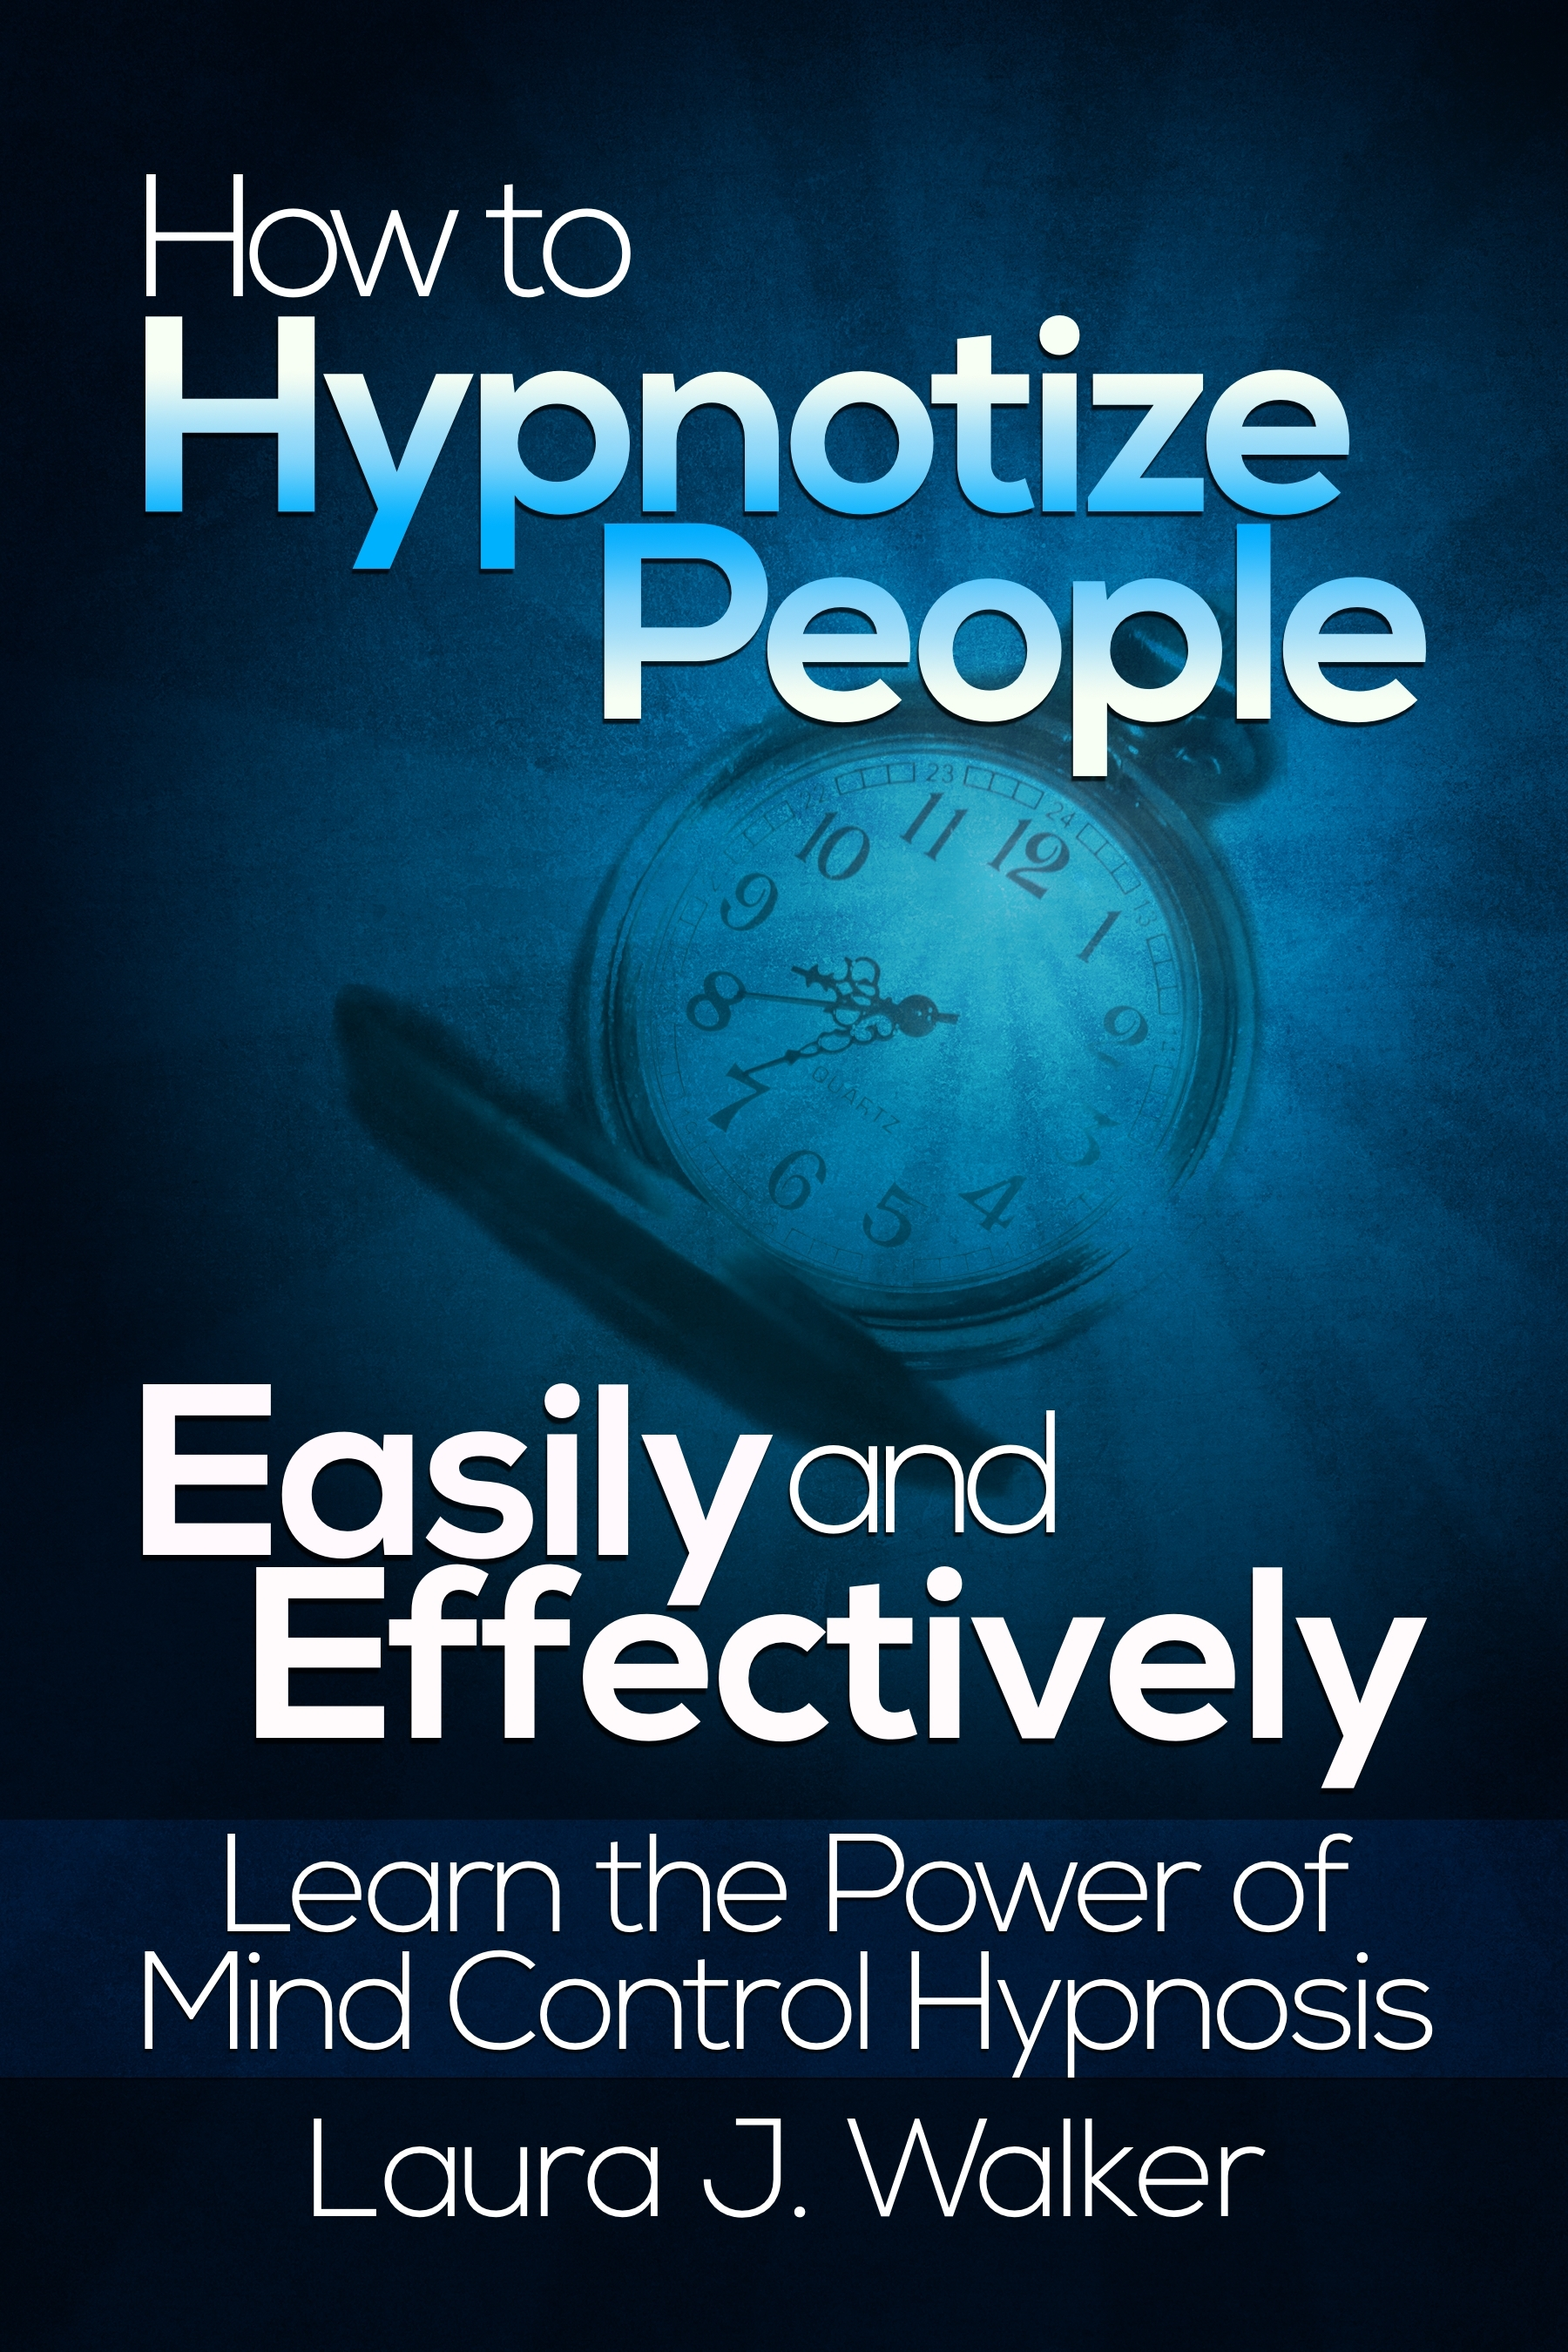 an introduction to the analysis of hypnosis Introduction to hypnosis institute of interpersonal hypnotherapy | hypnosis training raising the standards in hypnosis training transactional analysis.